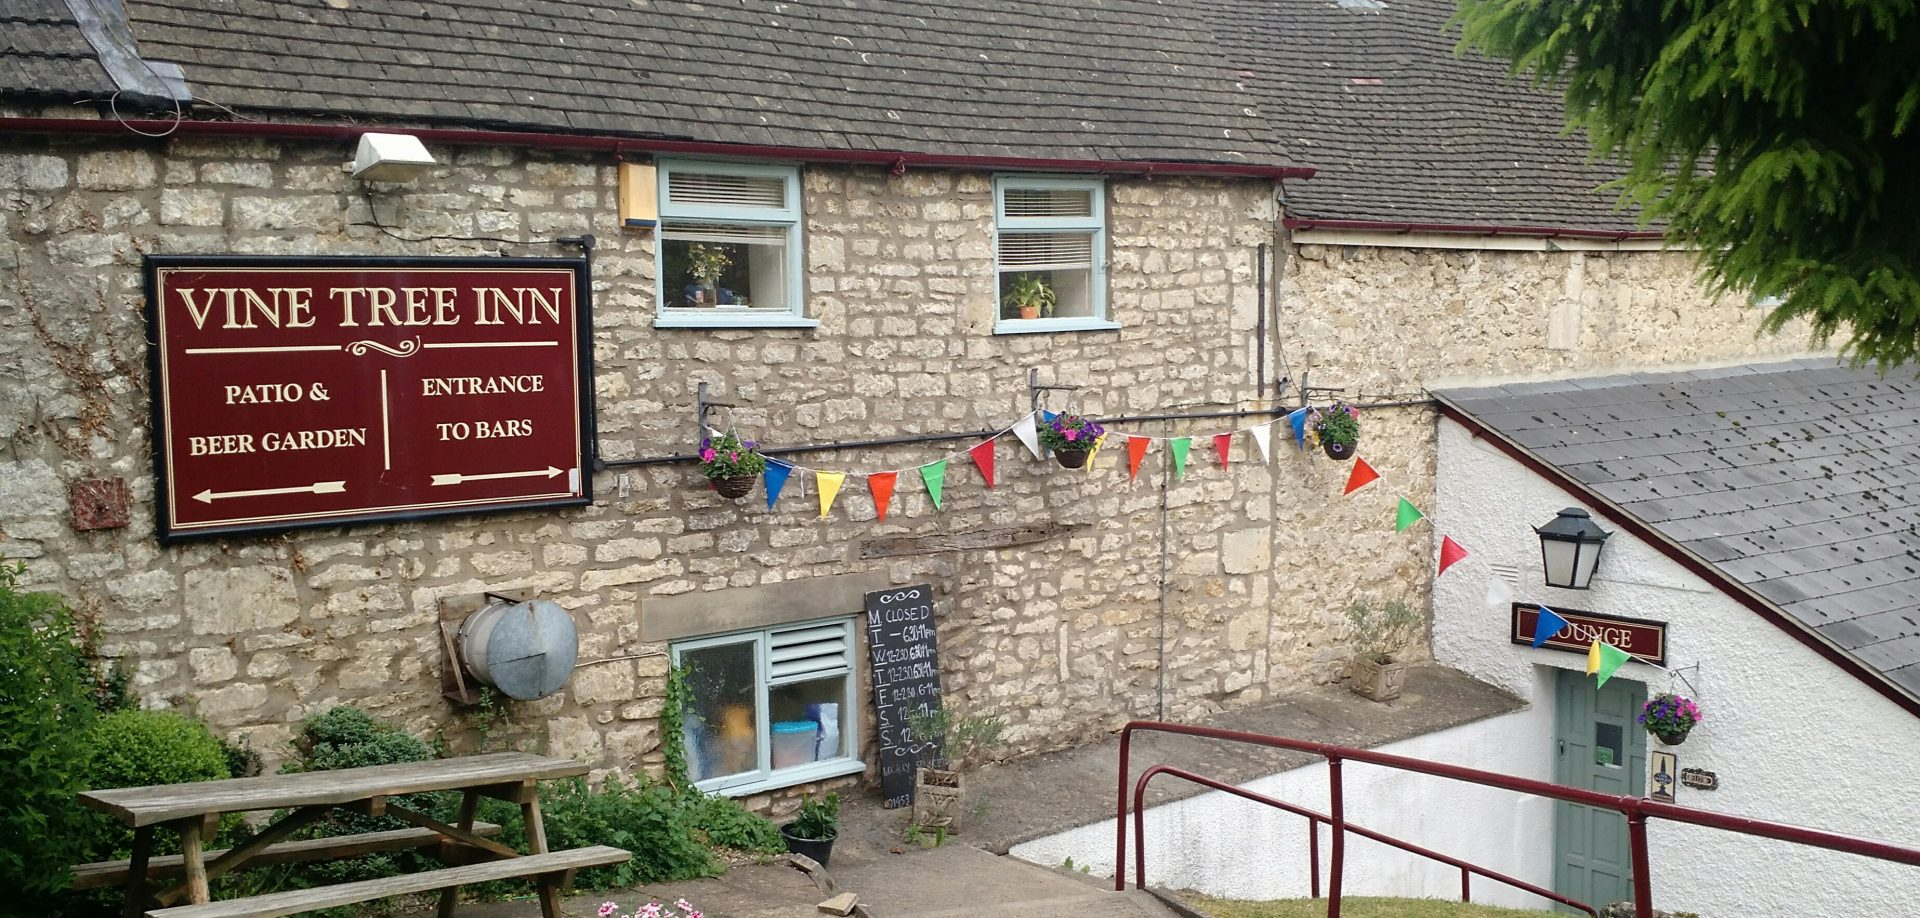 The Vine Tree Inn in Randwick, the end of the Cotswold Way for us